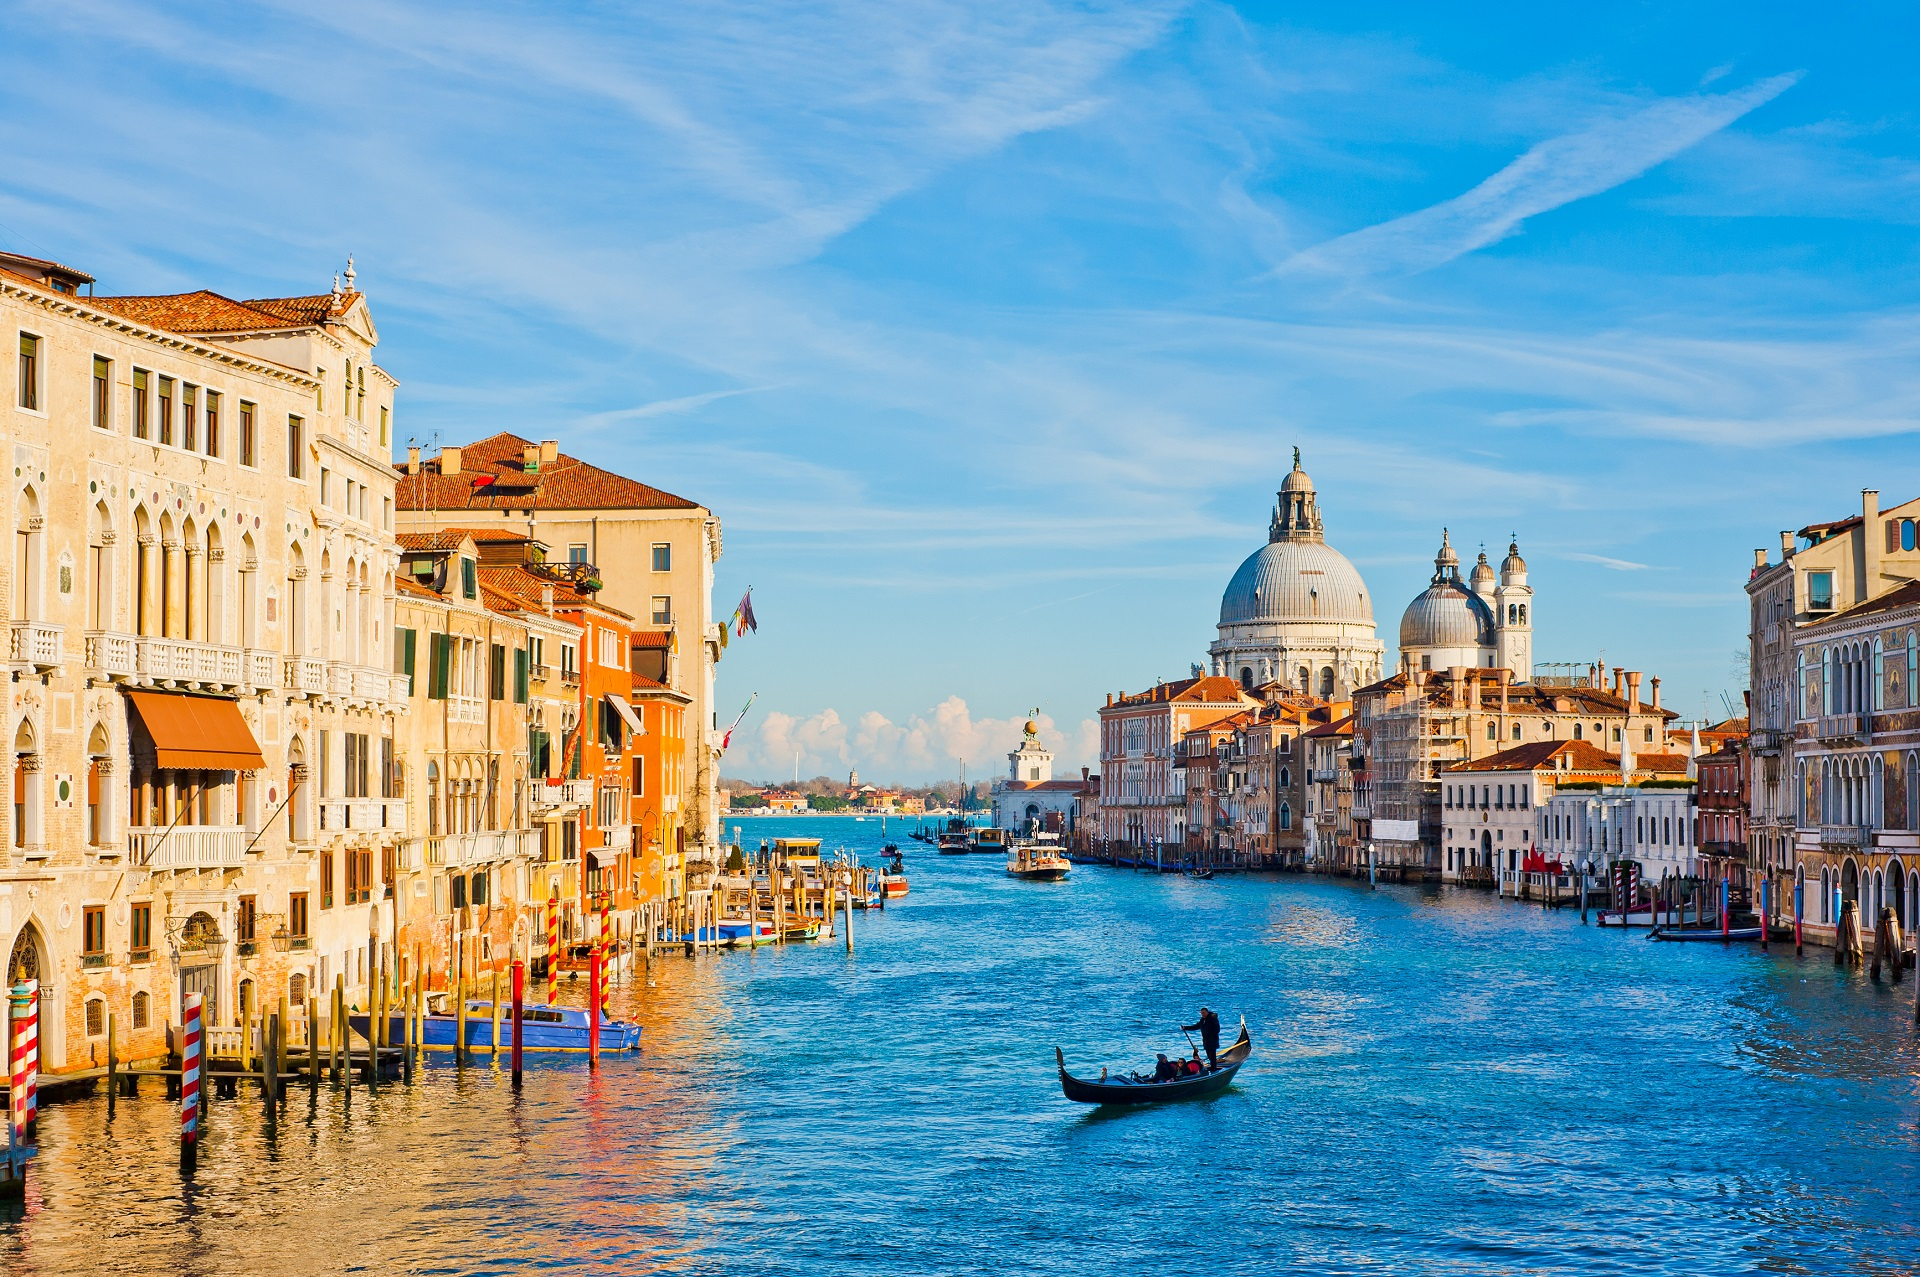 The Grand Canal, Venice, Italy_261086477